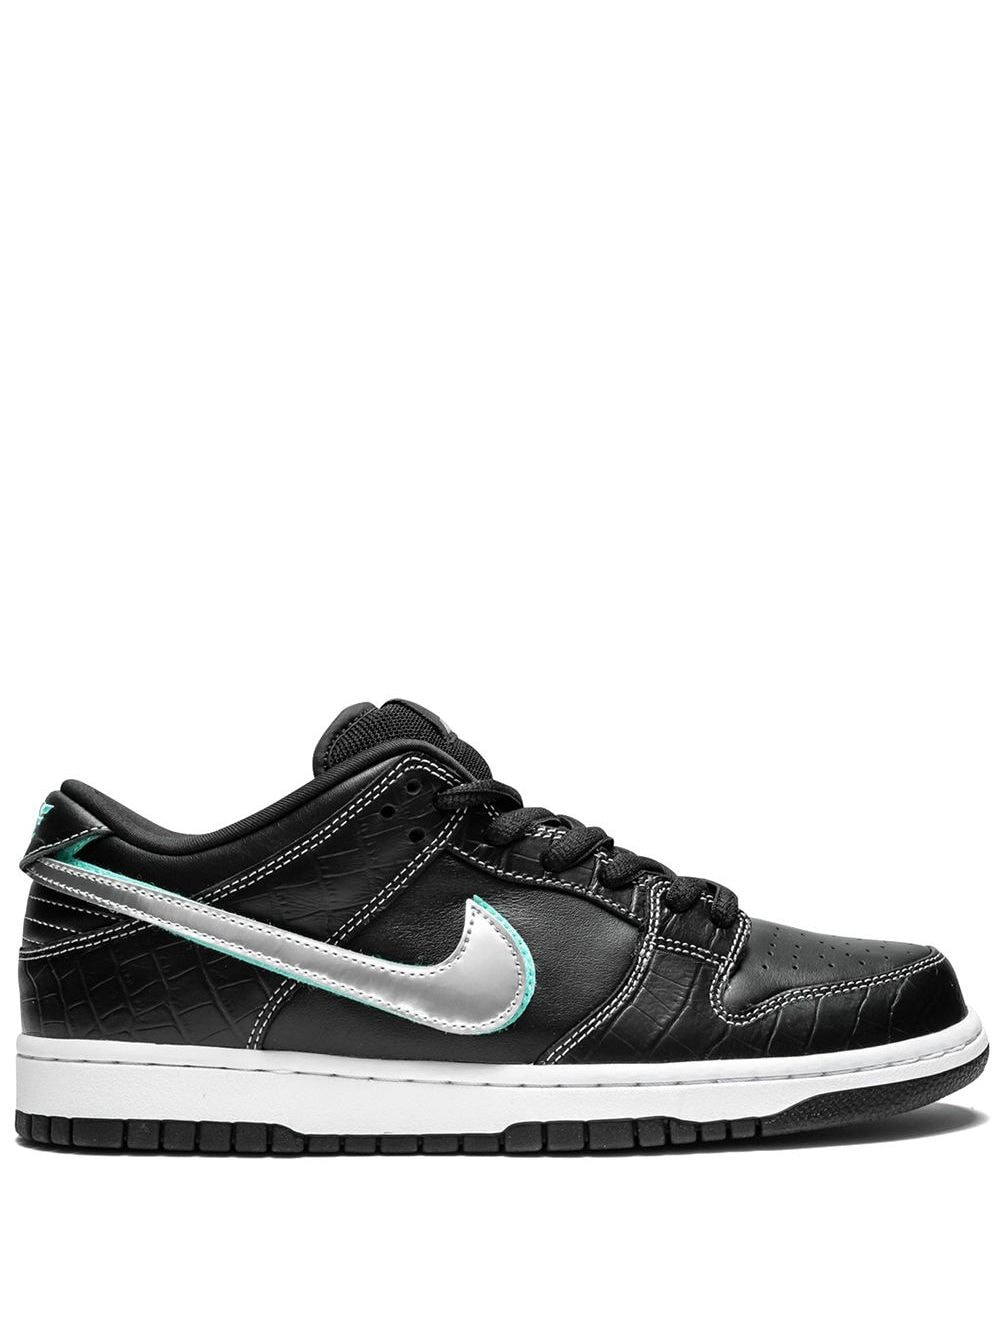 Nike Dunk Low Pro OG QS sneakers - Black von Nike